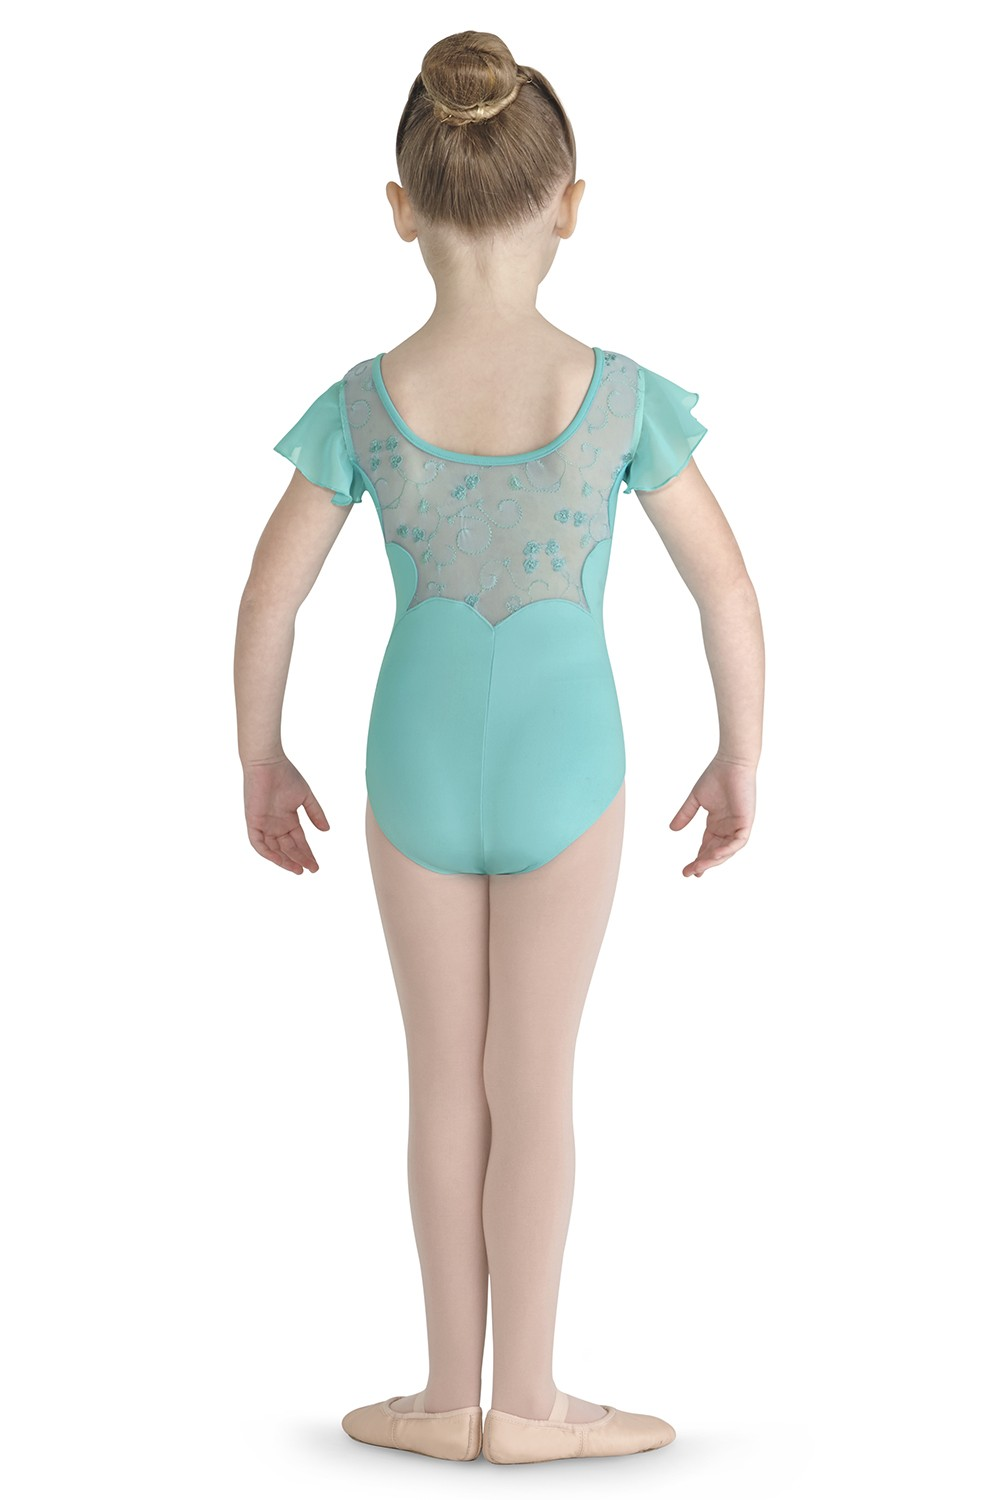 Colueta Children's Dance Leotards